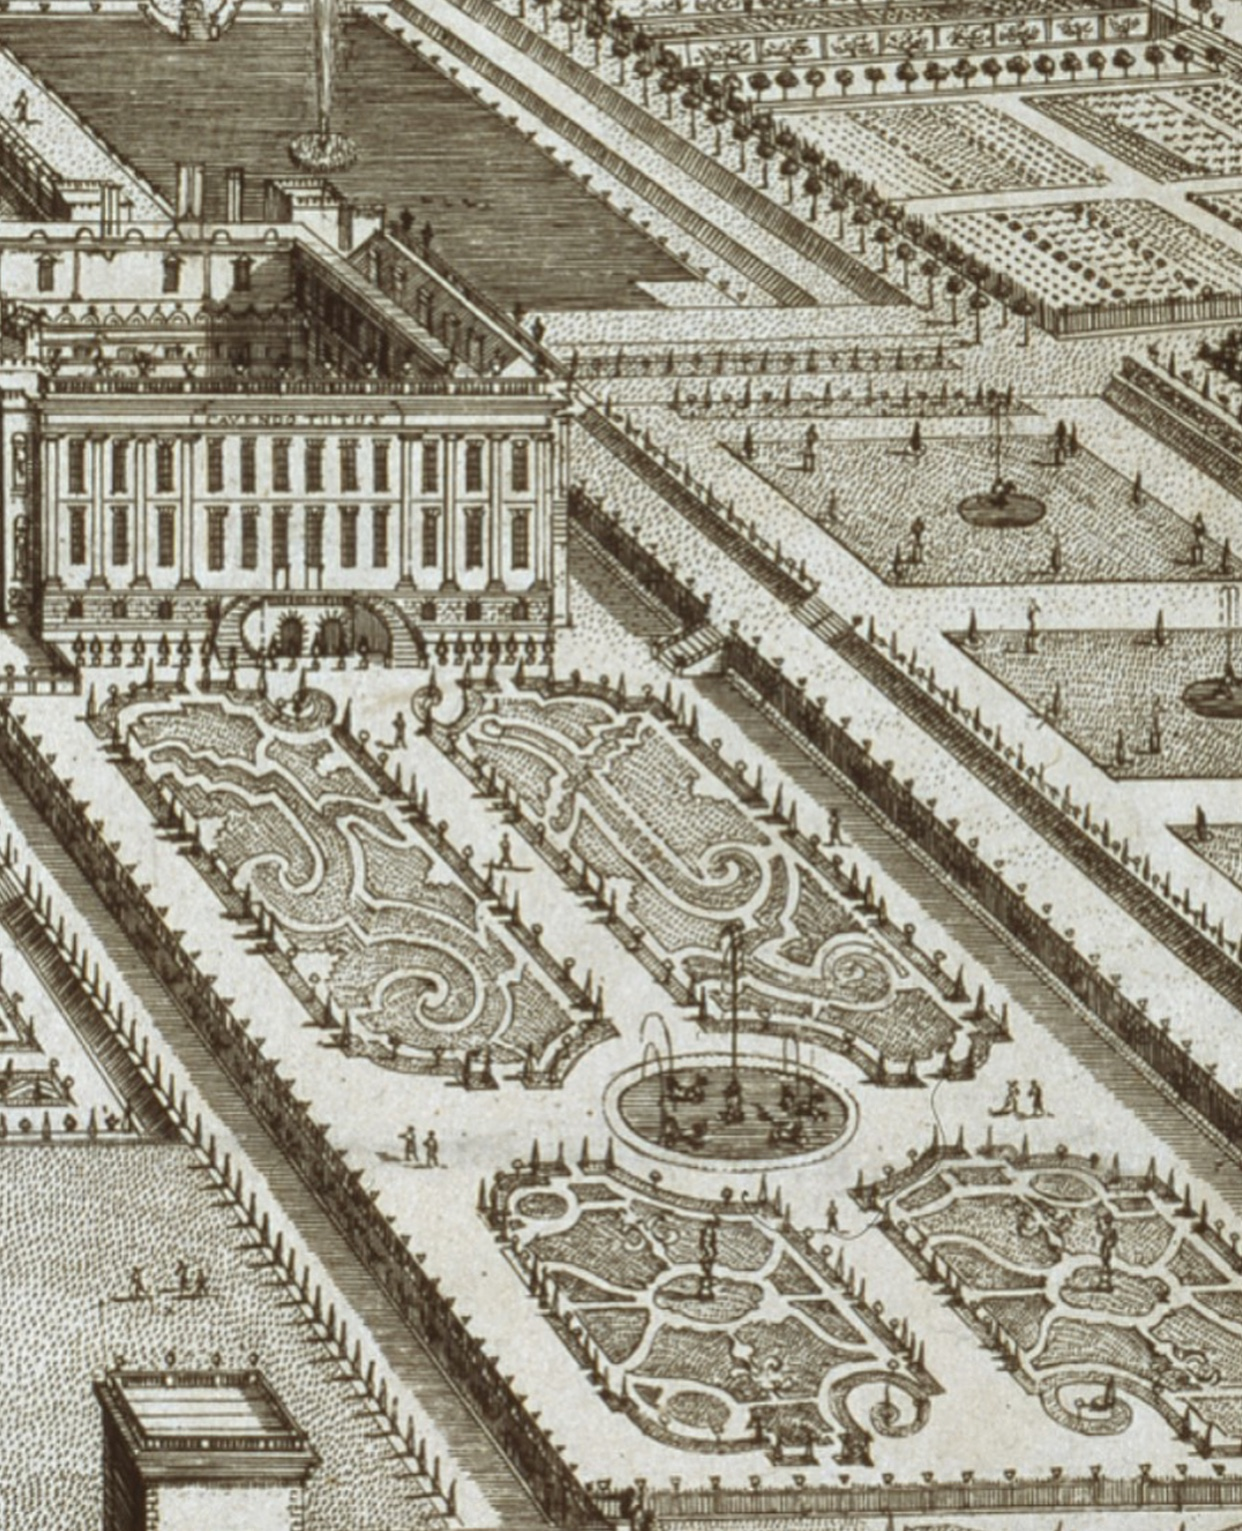 A 1699 illustration of the parterre garden at Chatsworth - (Photo: © Chatsworth House)